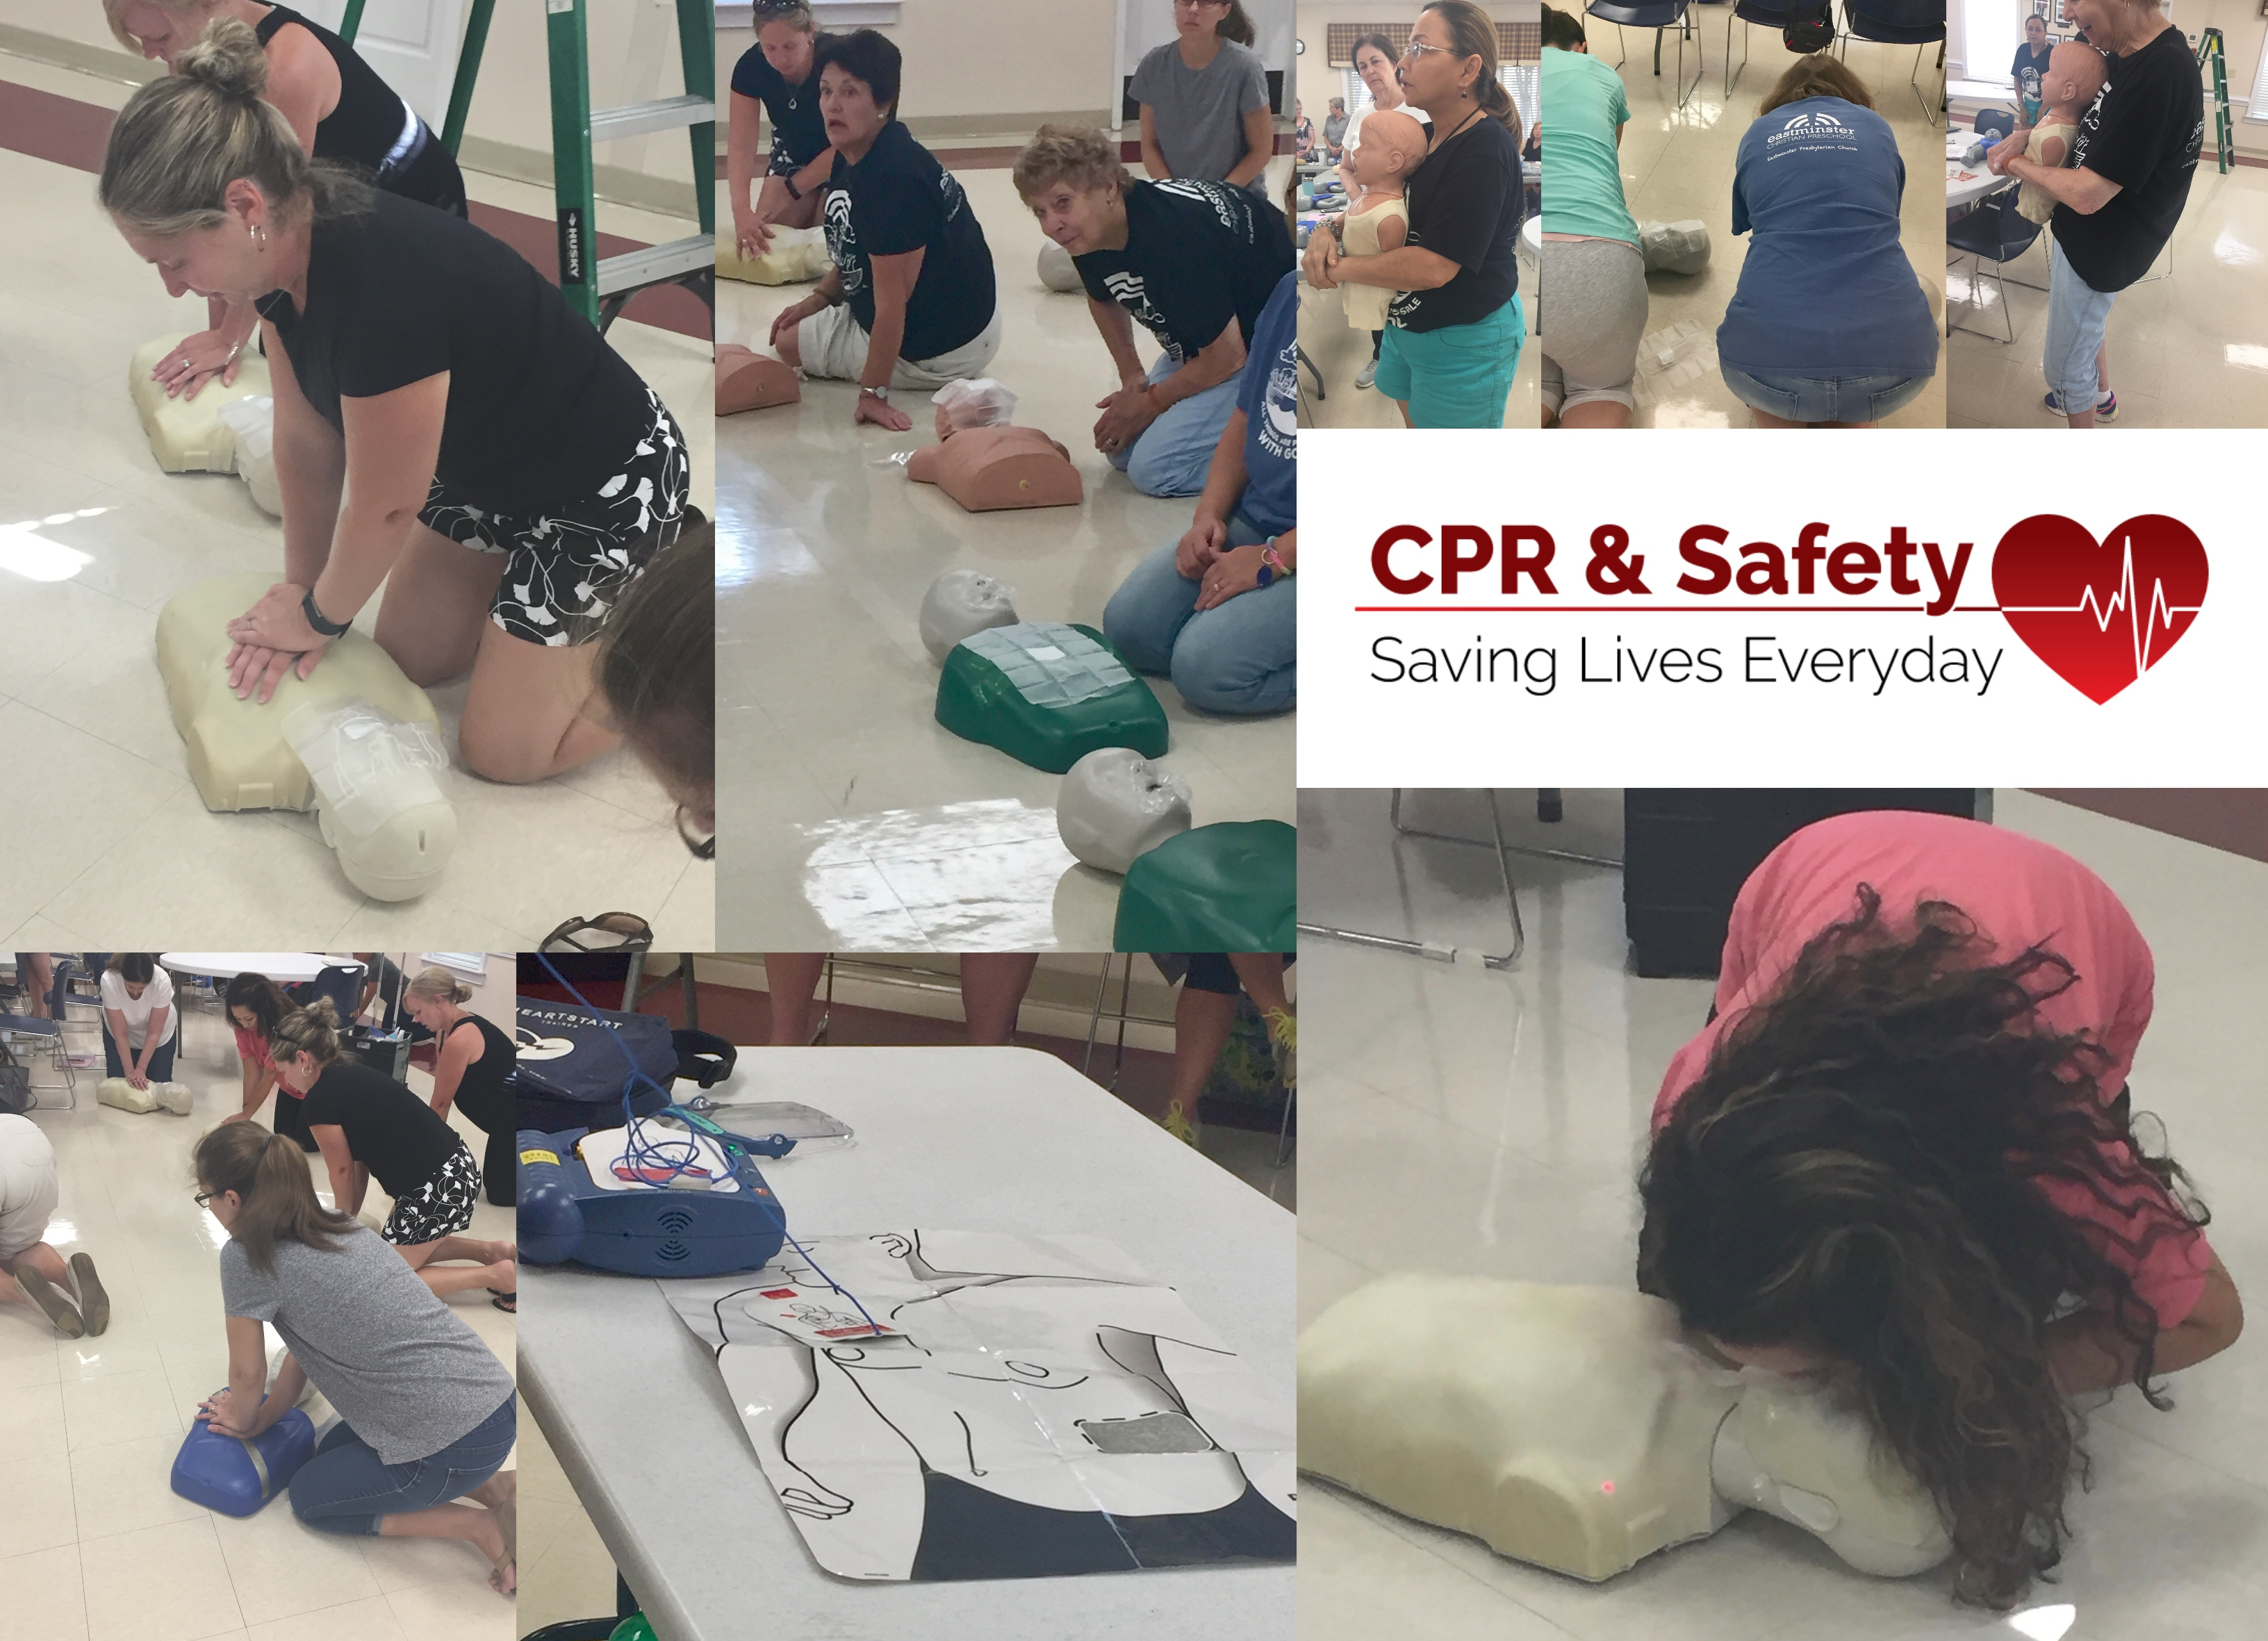 CPR and Safety image 2